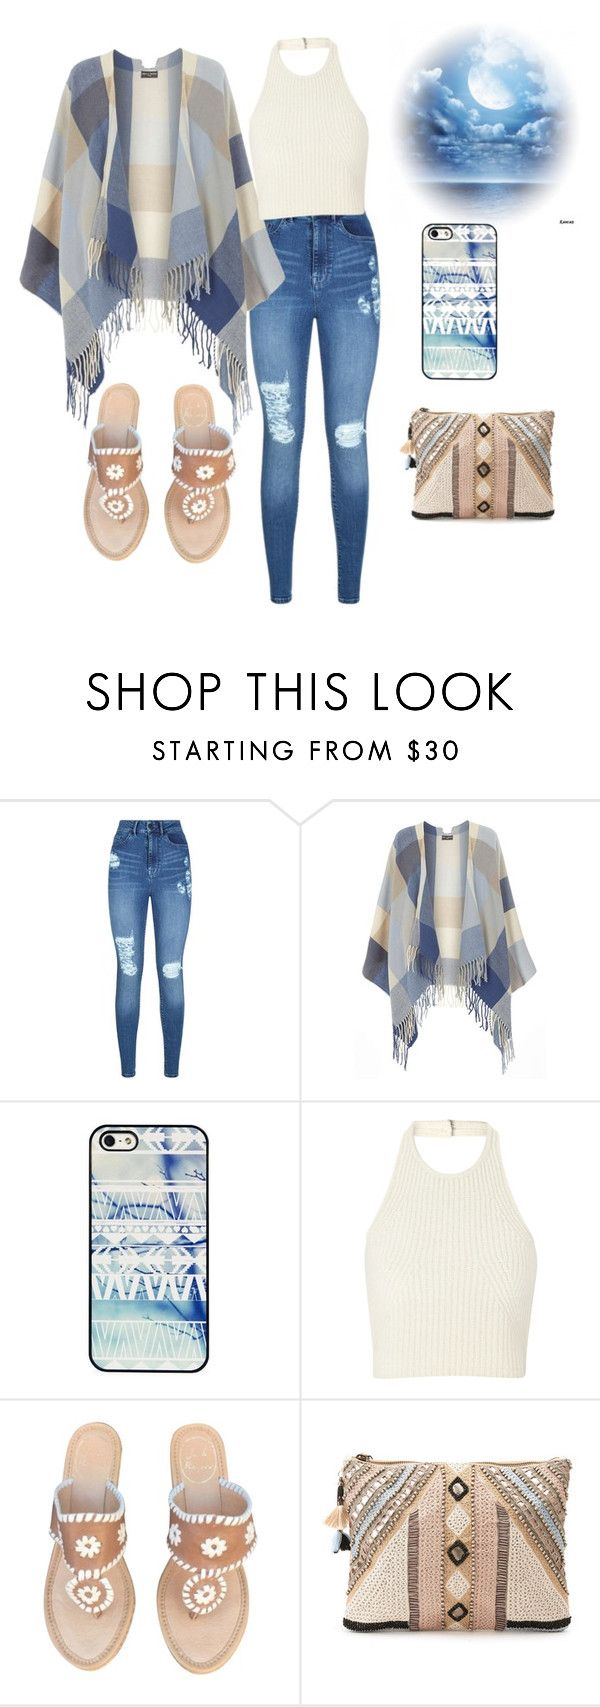 """""""The Casuals"""" by kimberlydalessandro ❤ liked on Polyvore featuring Lipsy, Dorothy Perkins, BlissfulCASE, Jack Rogers and BLANK"""